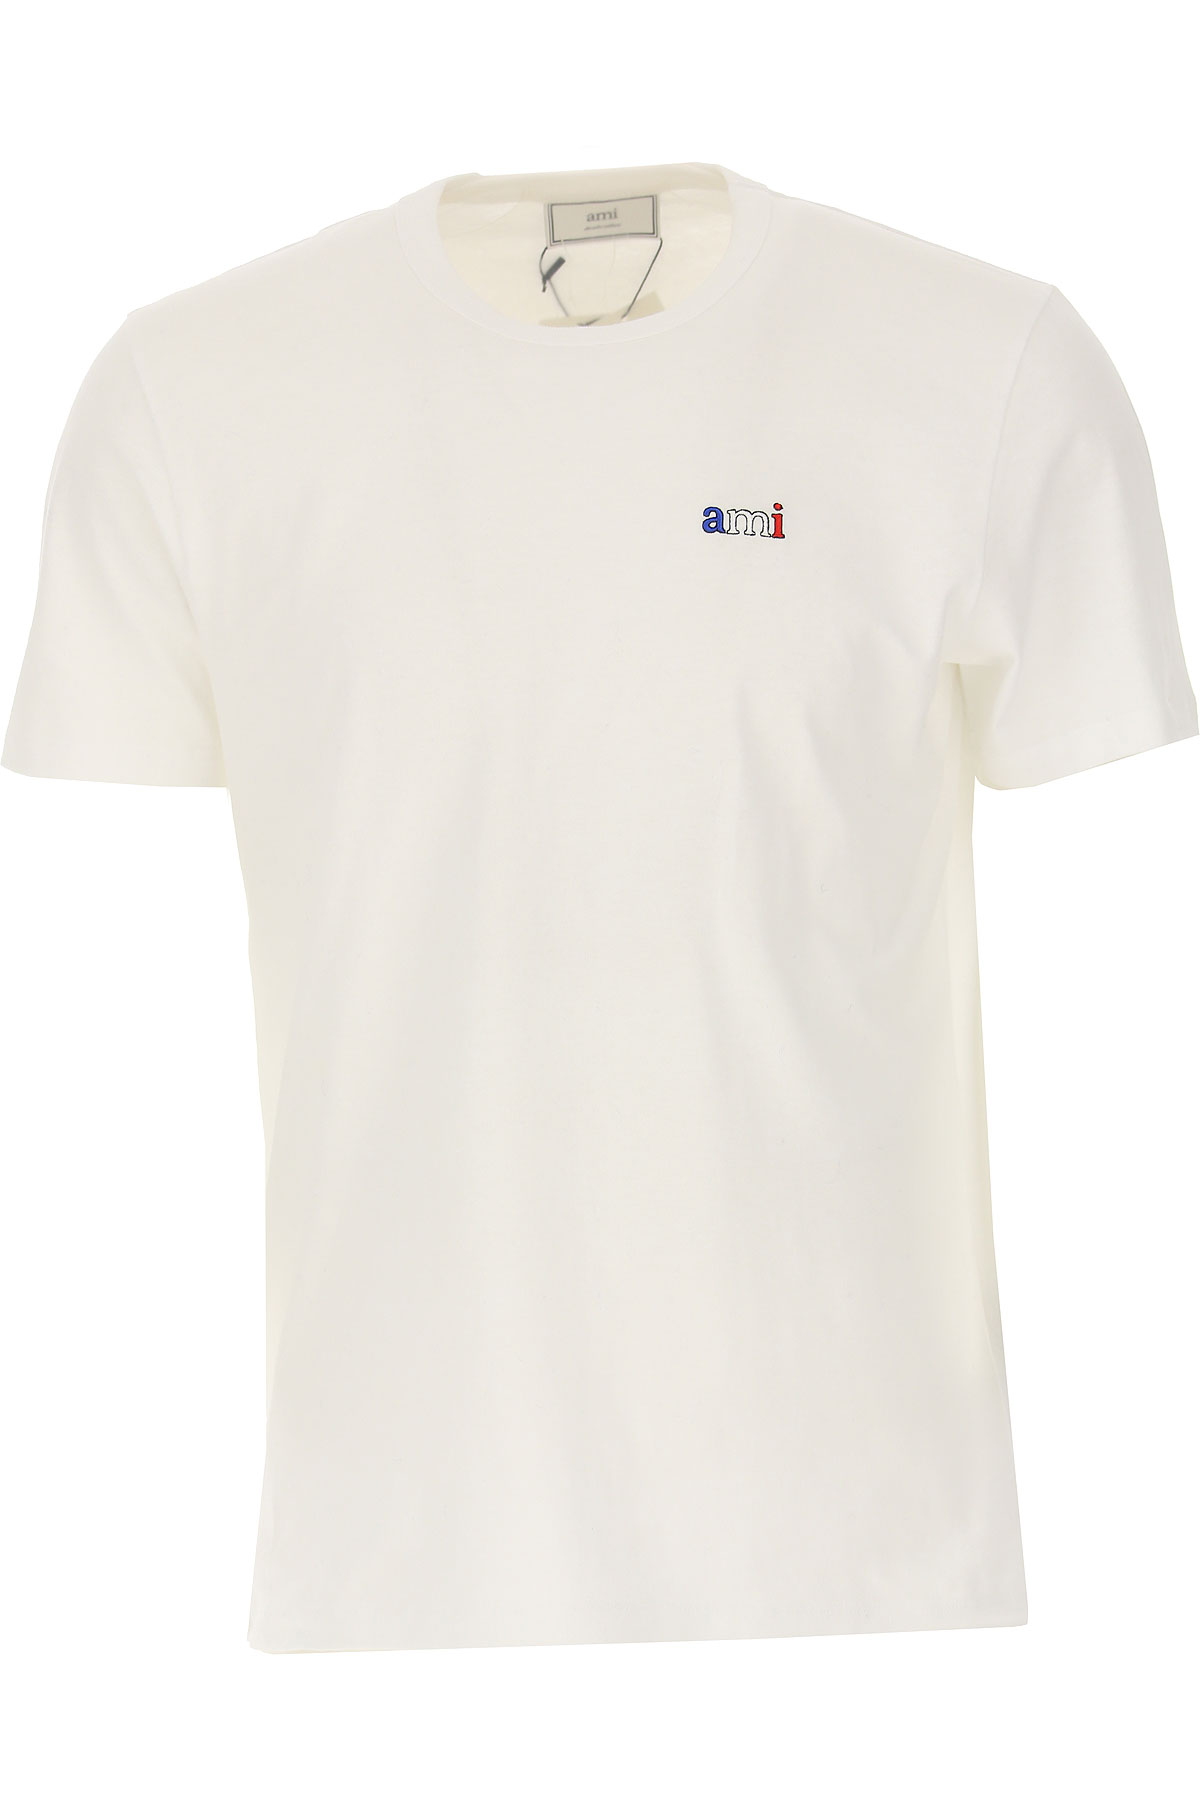 Ami T-Shirt for Men On Sale, White, Cotton, 2019, S XL